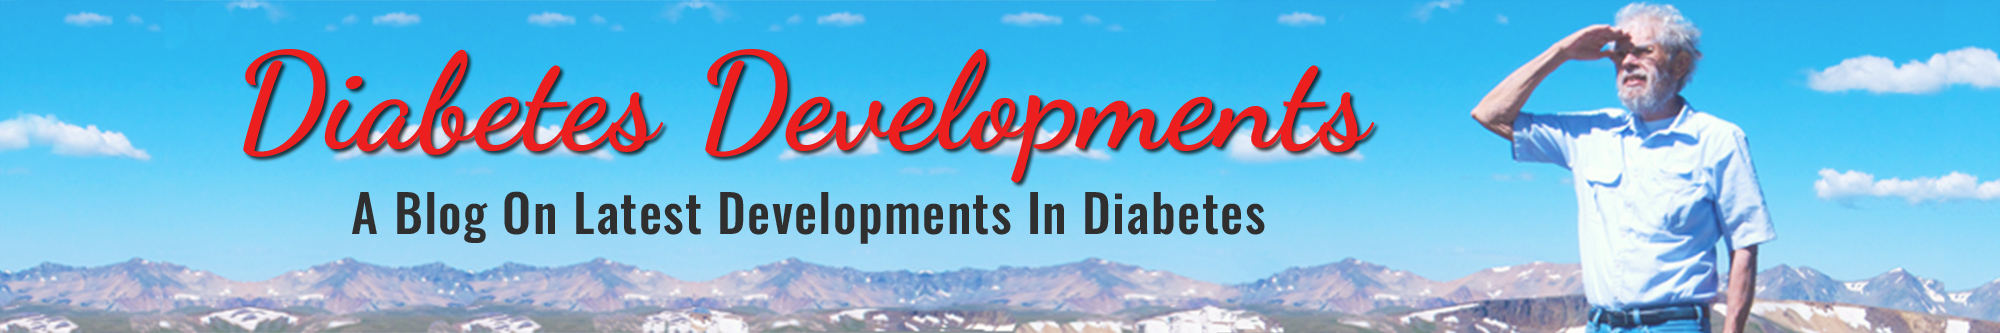 Diabetes Developments